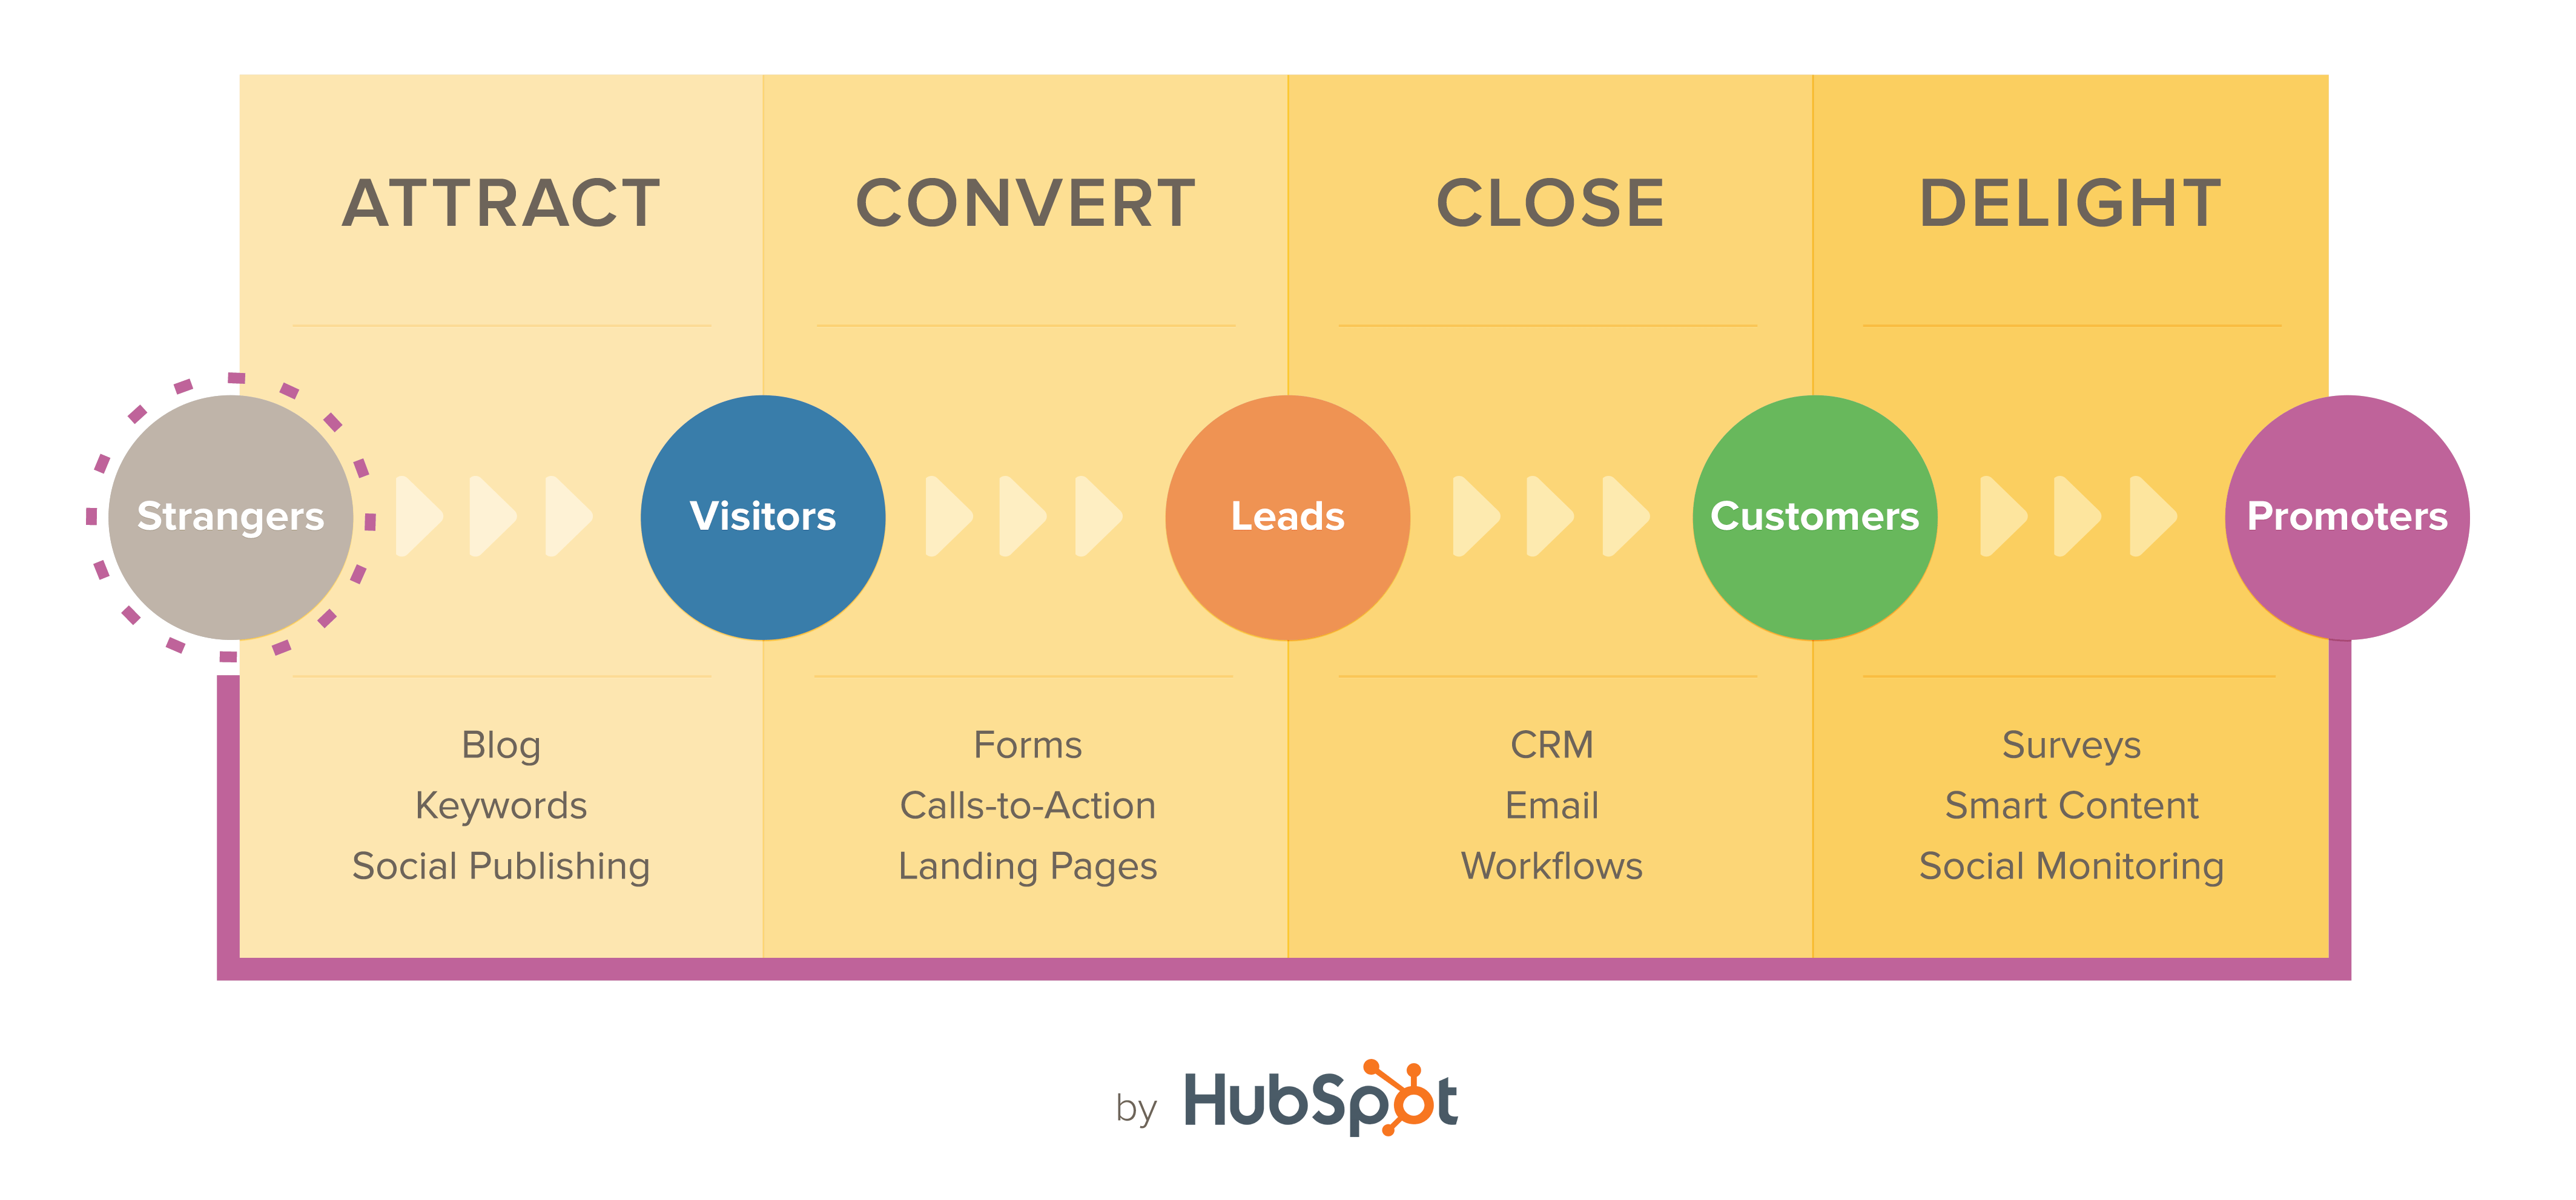 hubspot-accd-image